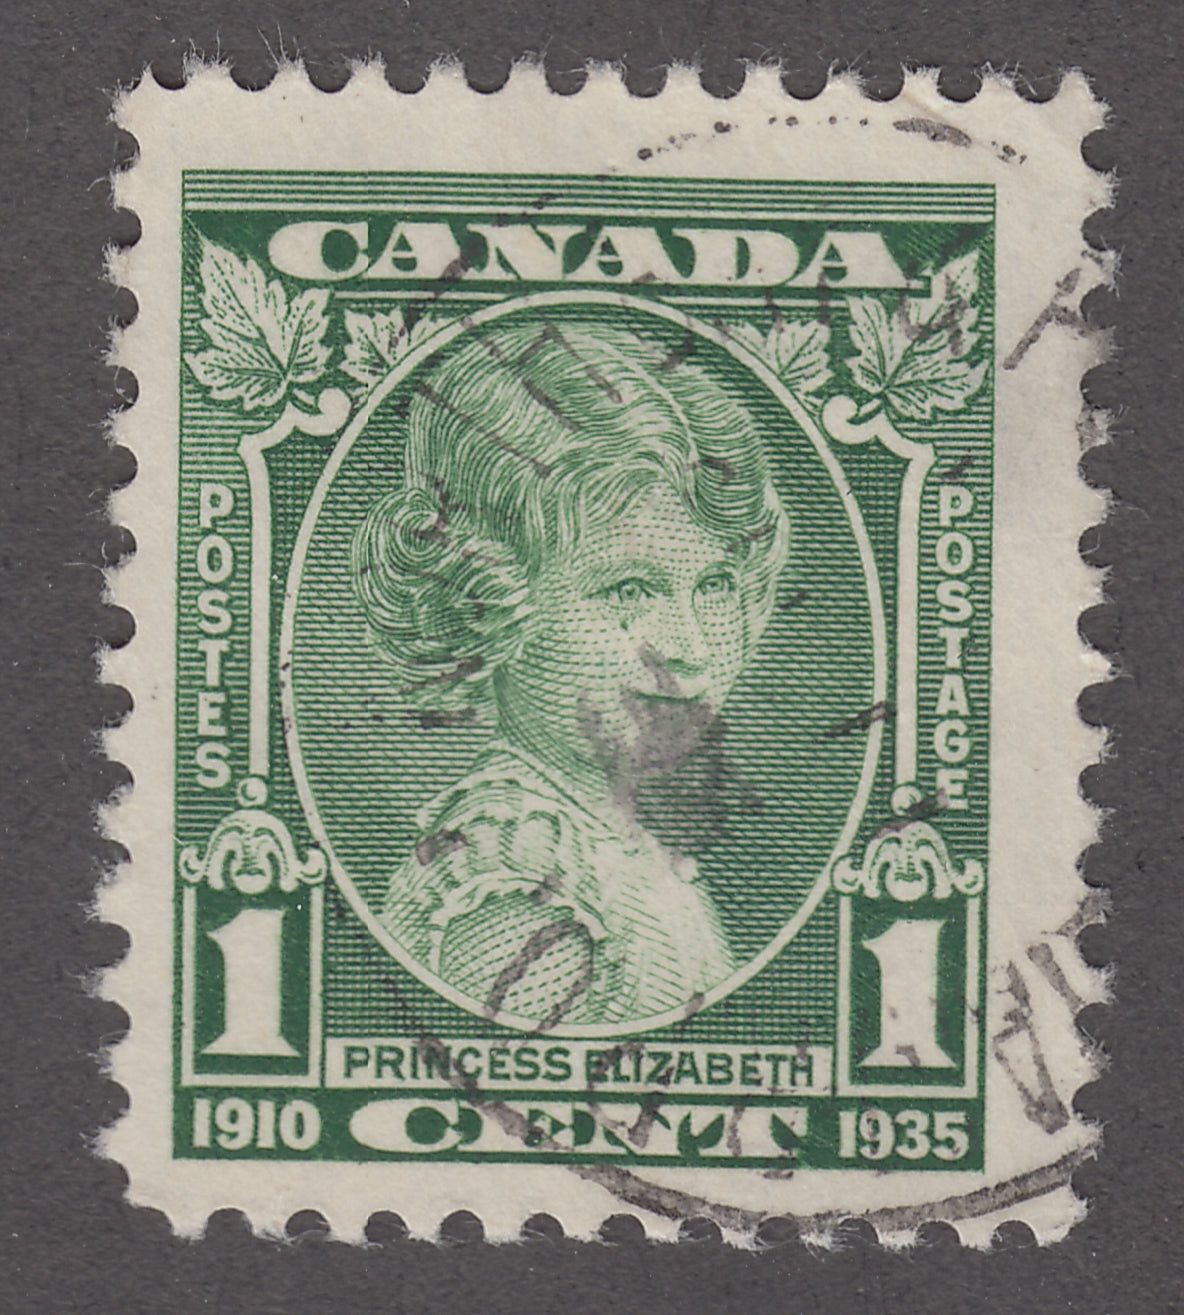 0211CA1805 - Canada #211i - Used 'Weeping Princess'